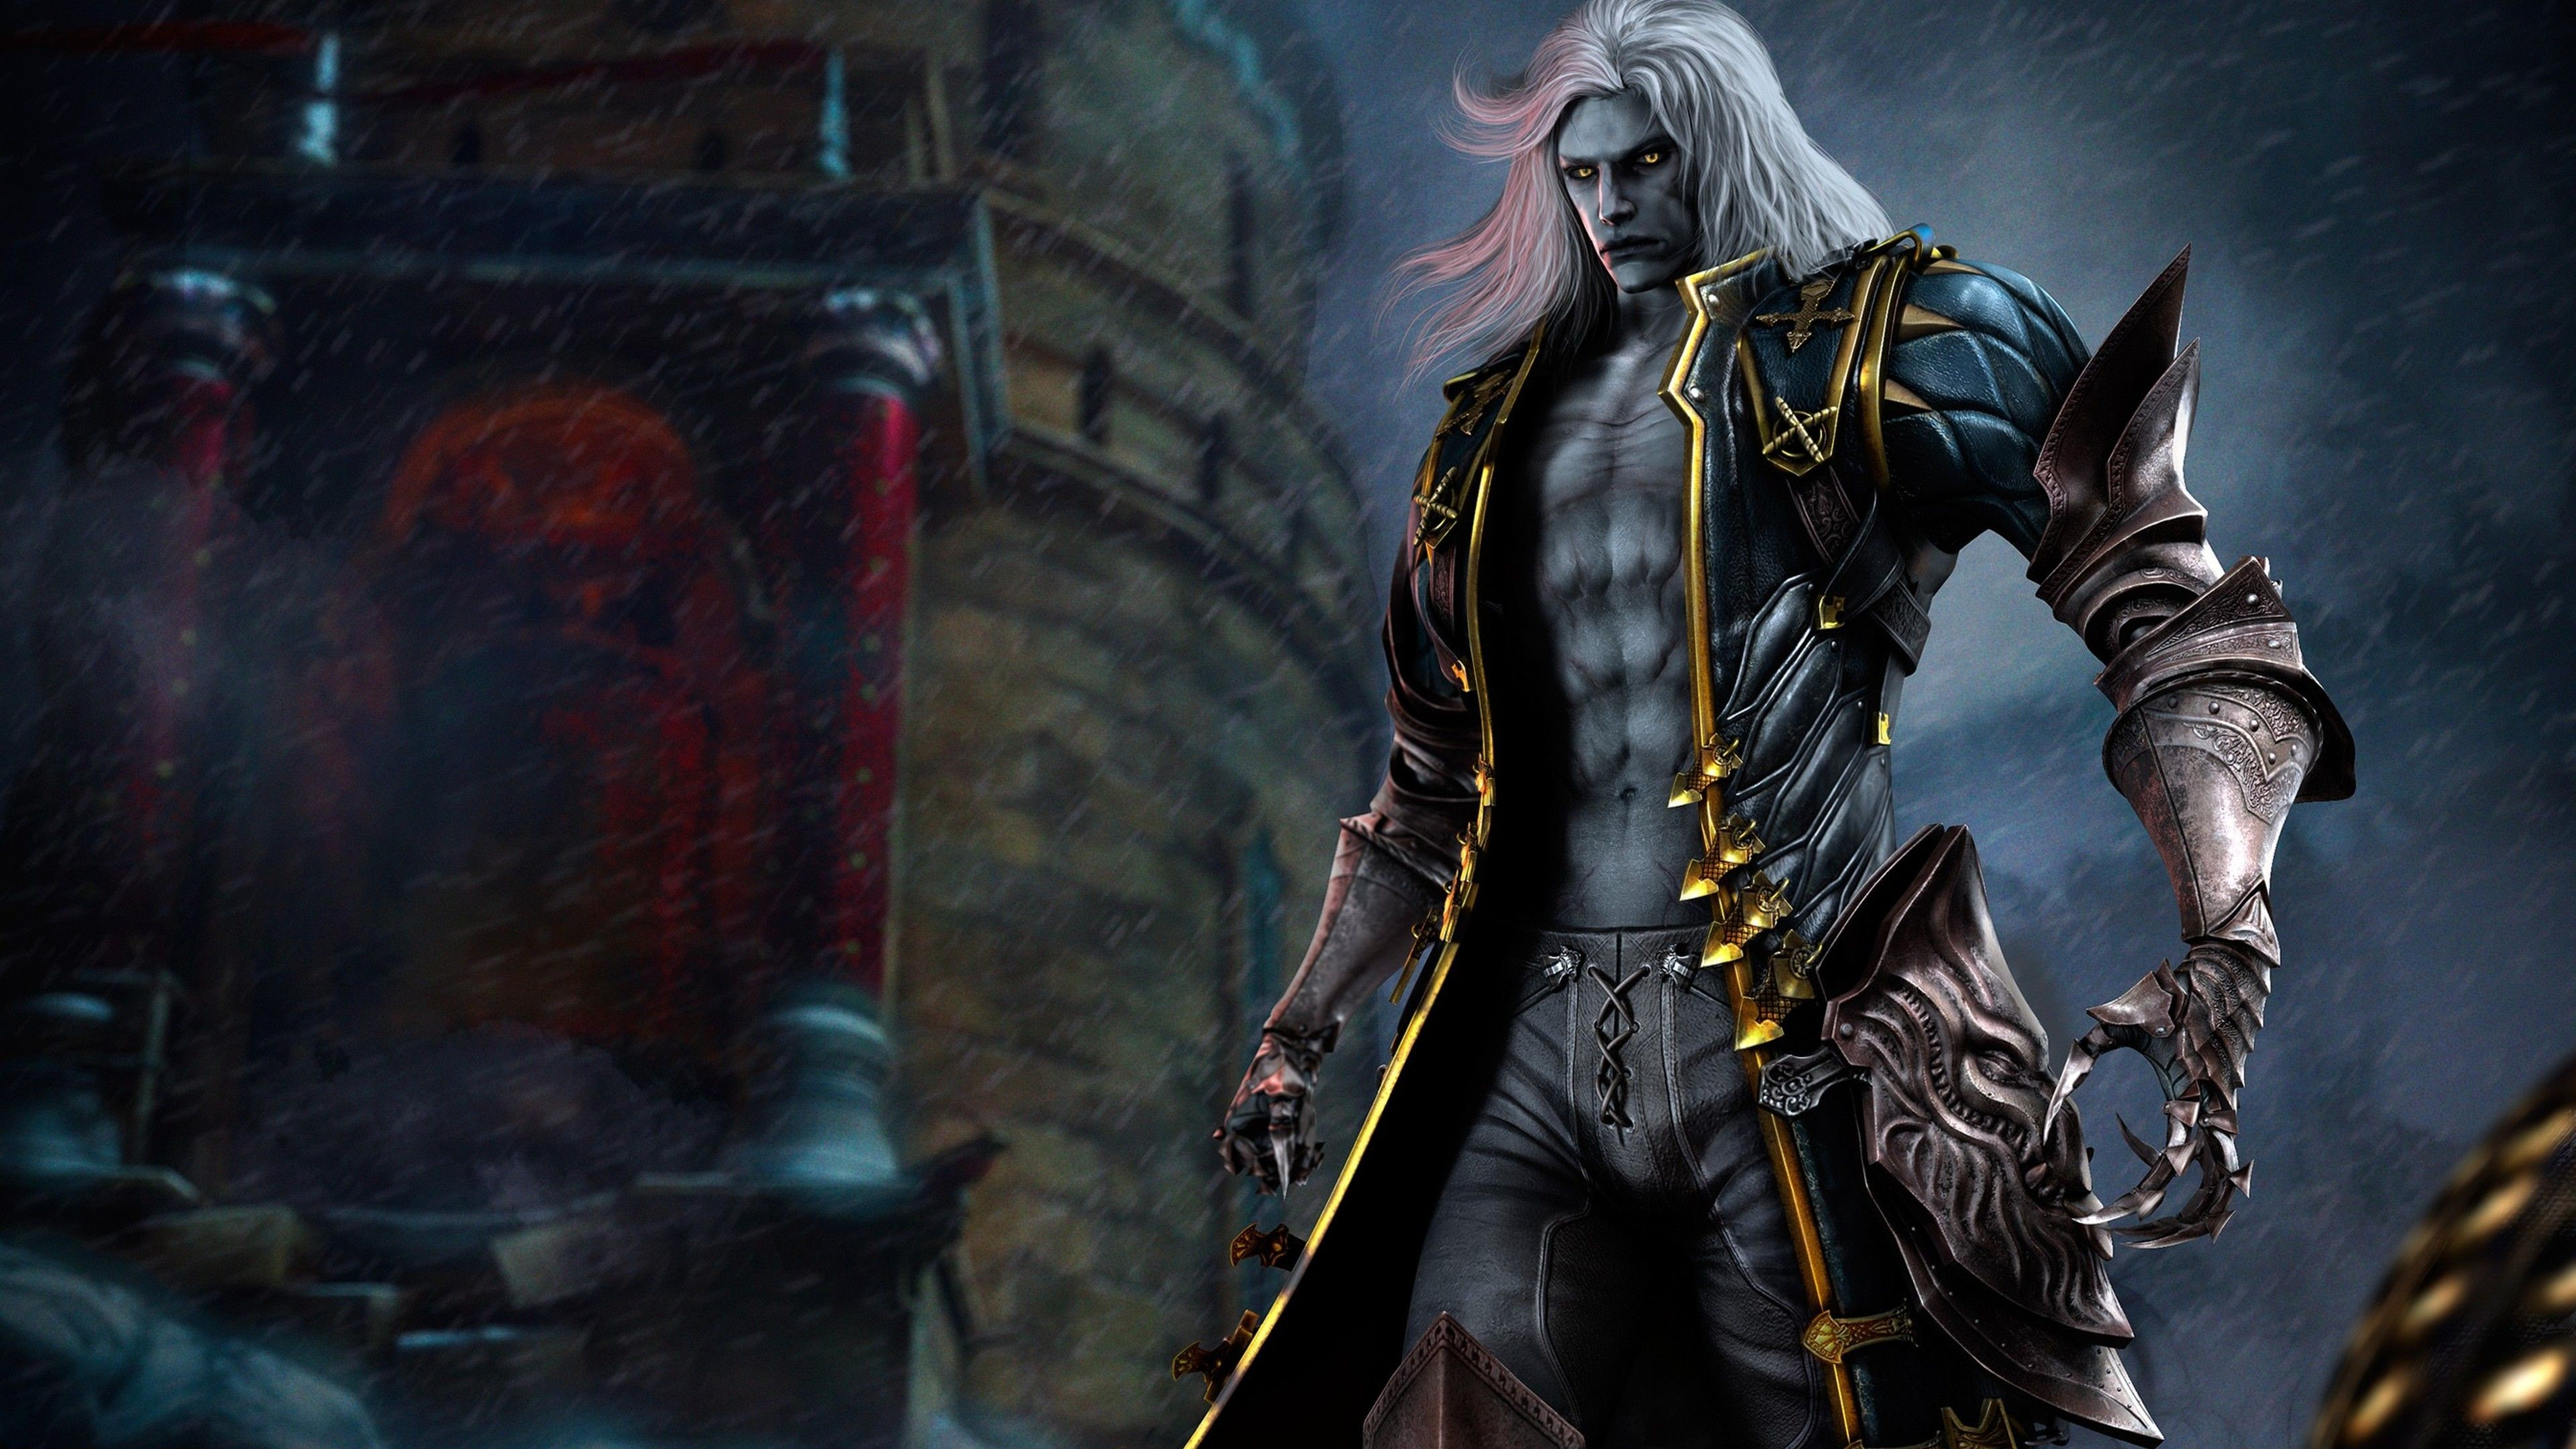 Res: 3840x2160, Alucard In Castlevania Lords Of Shadow 2 Wallpaper   Games HD